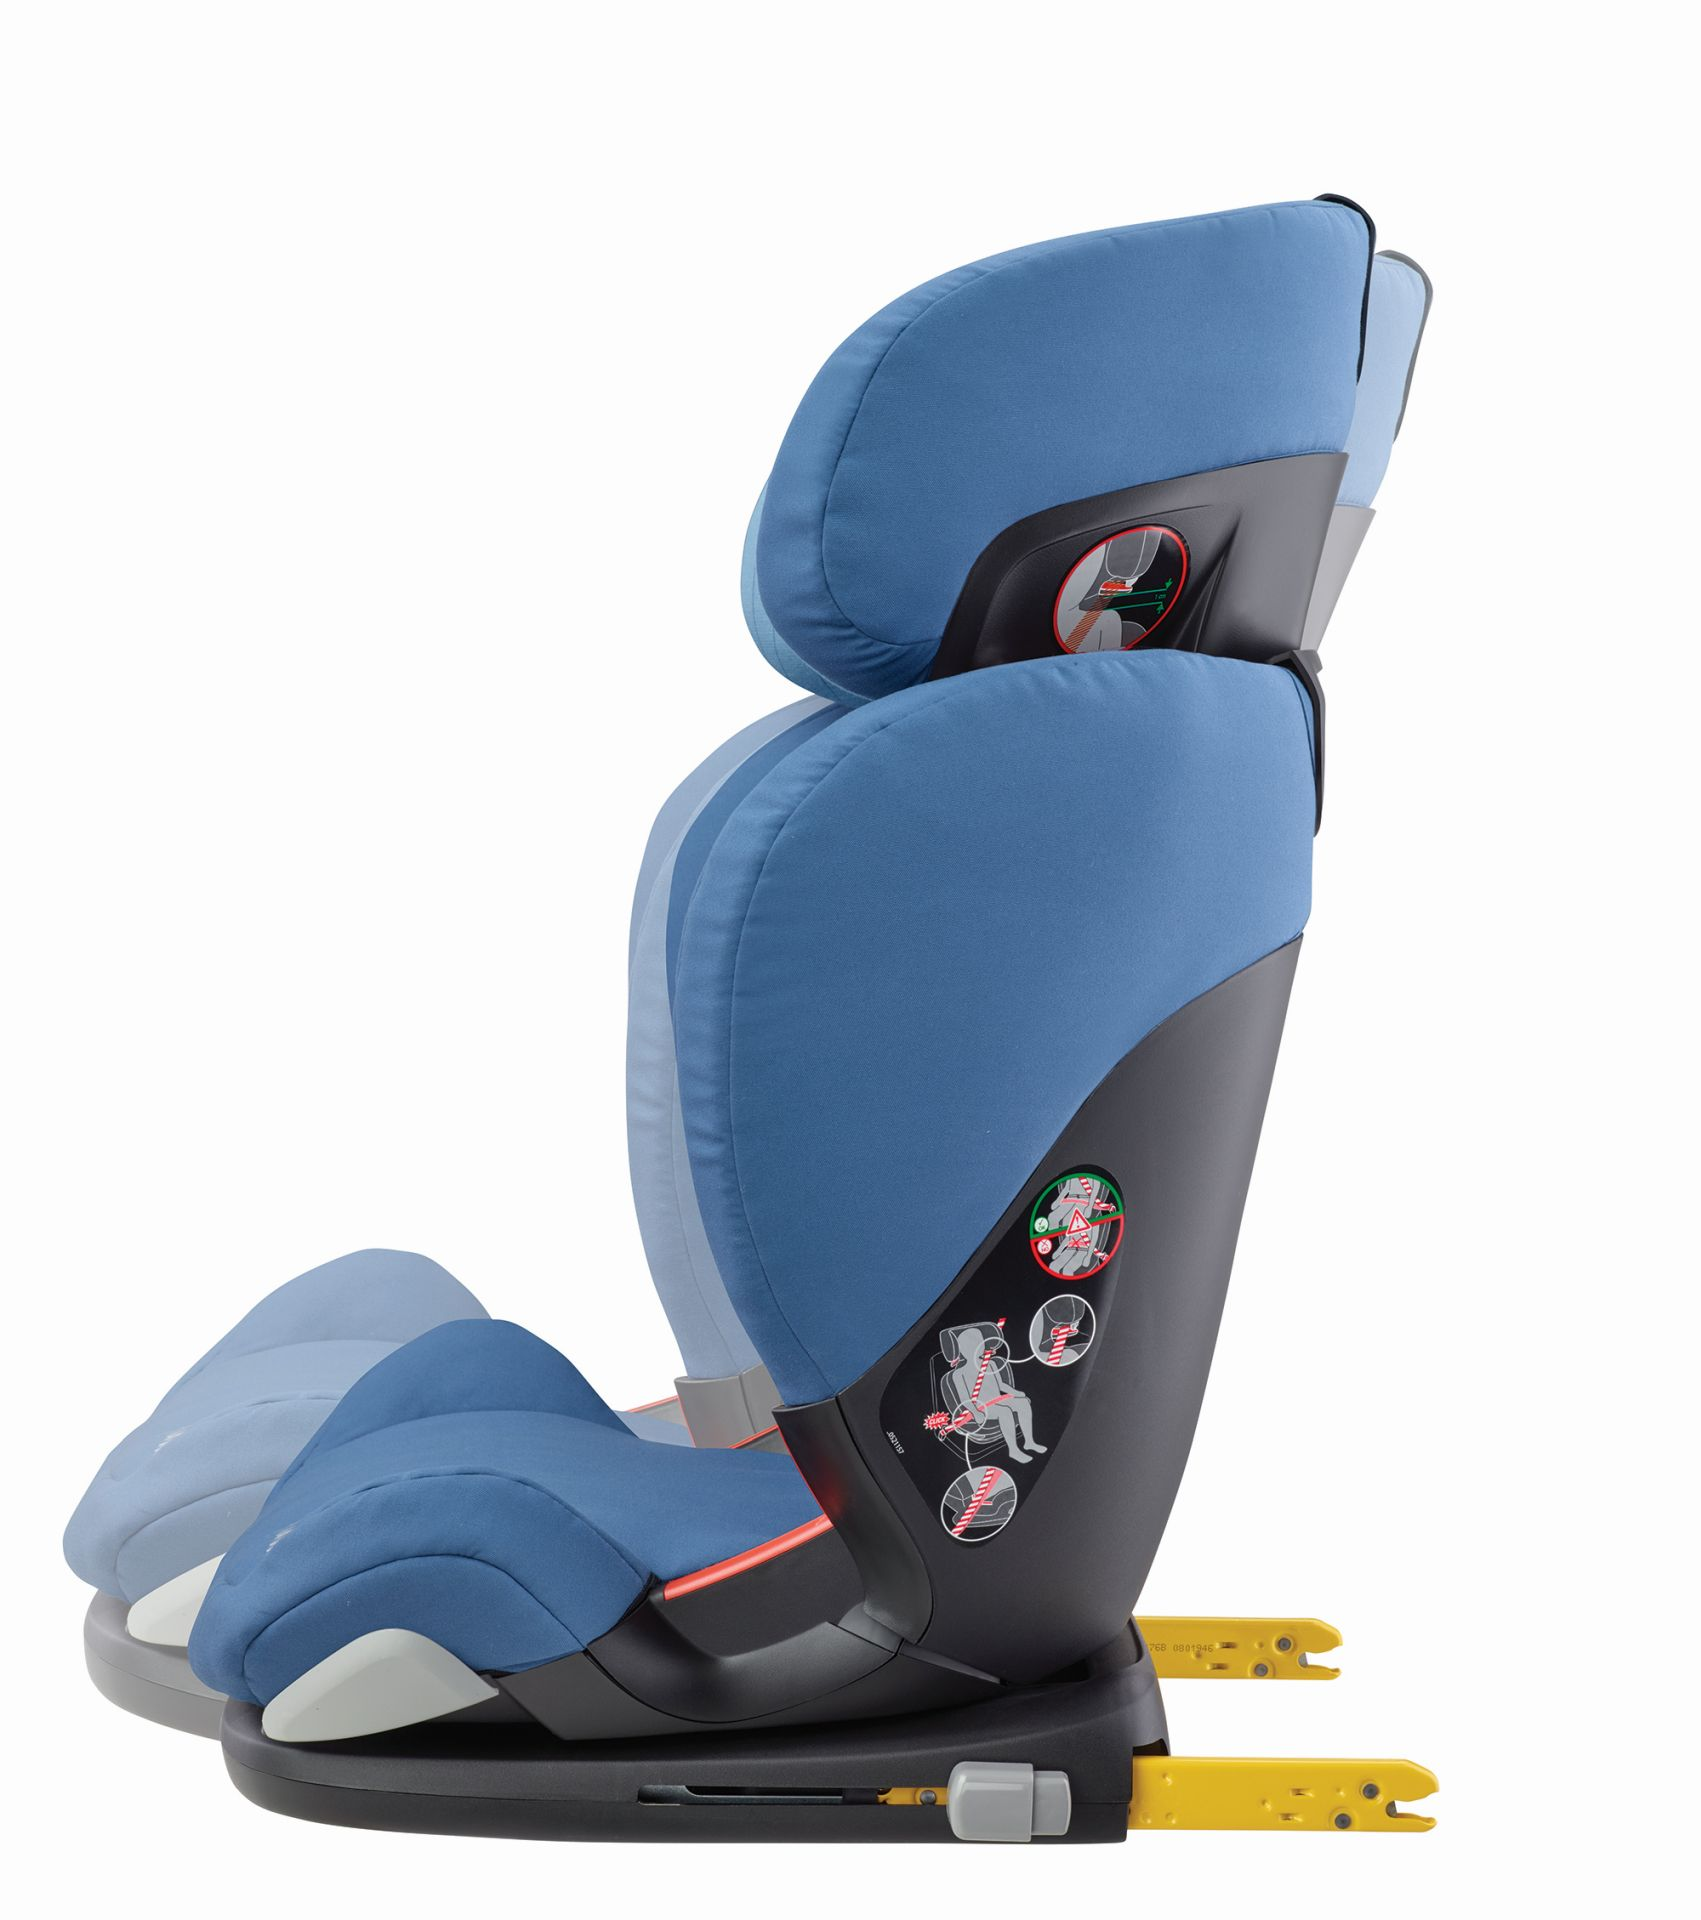 Maxi cosi safety seat rodifix airprotect 2018 frequency for Maxi cosi housse